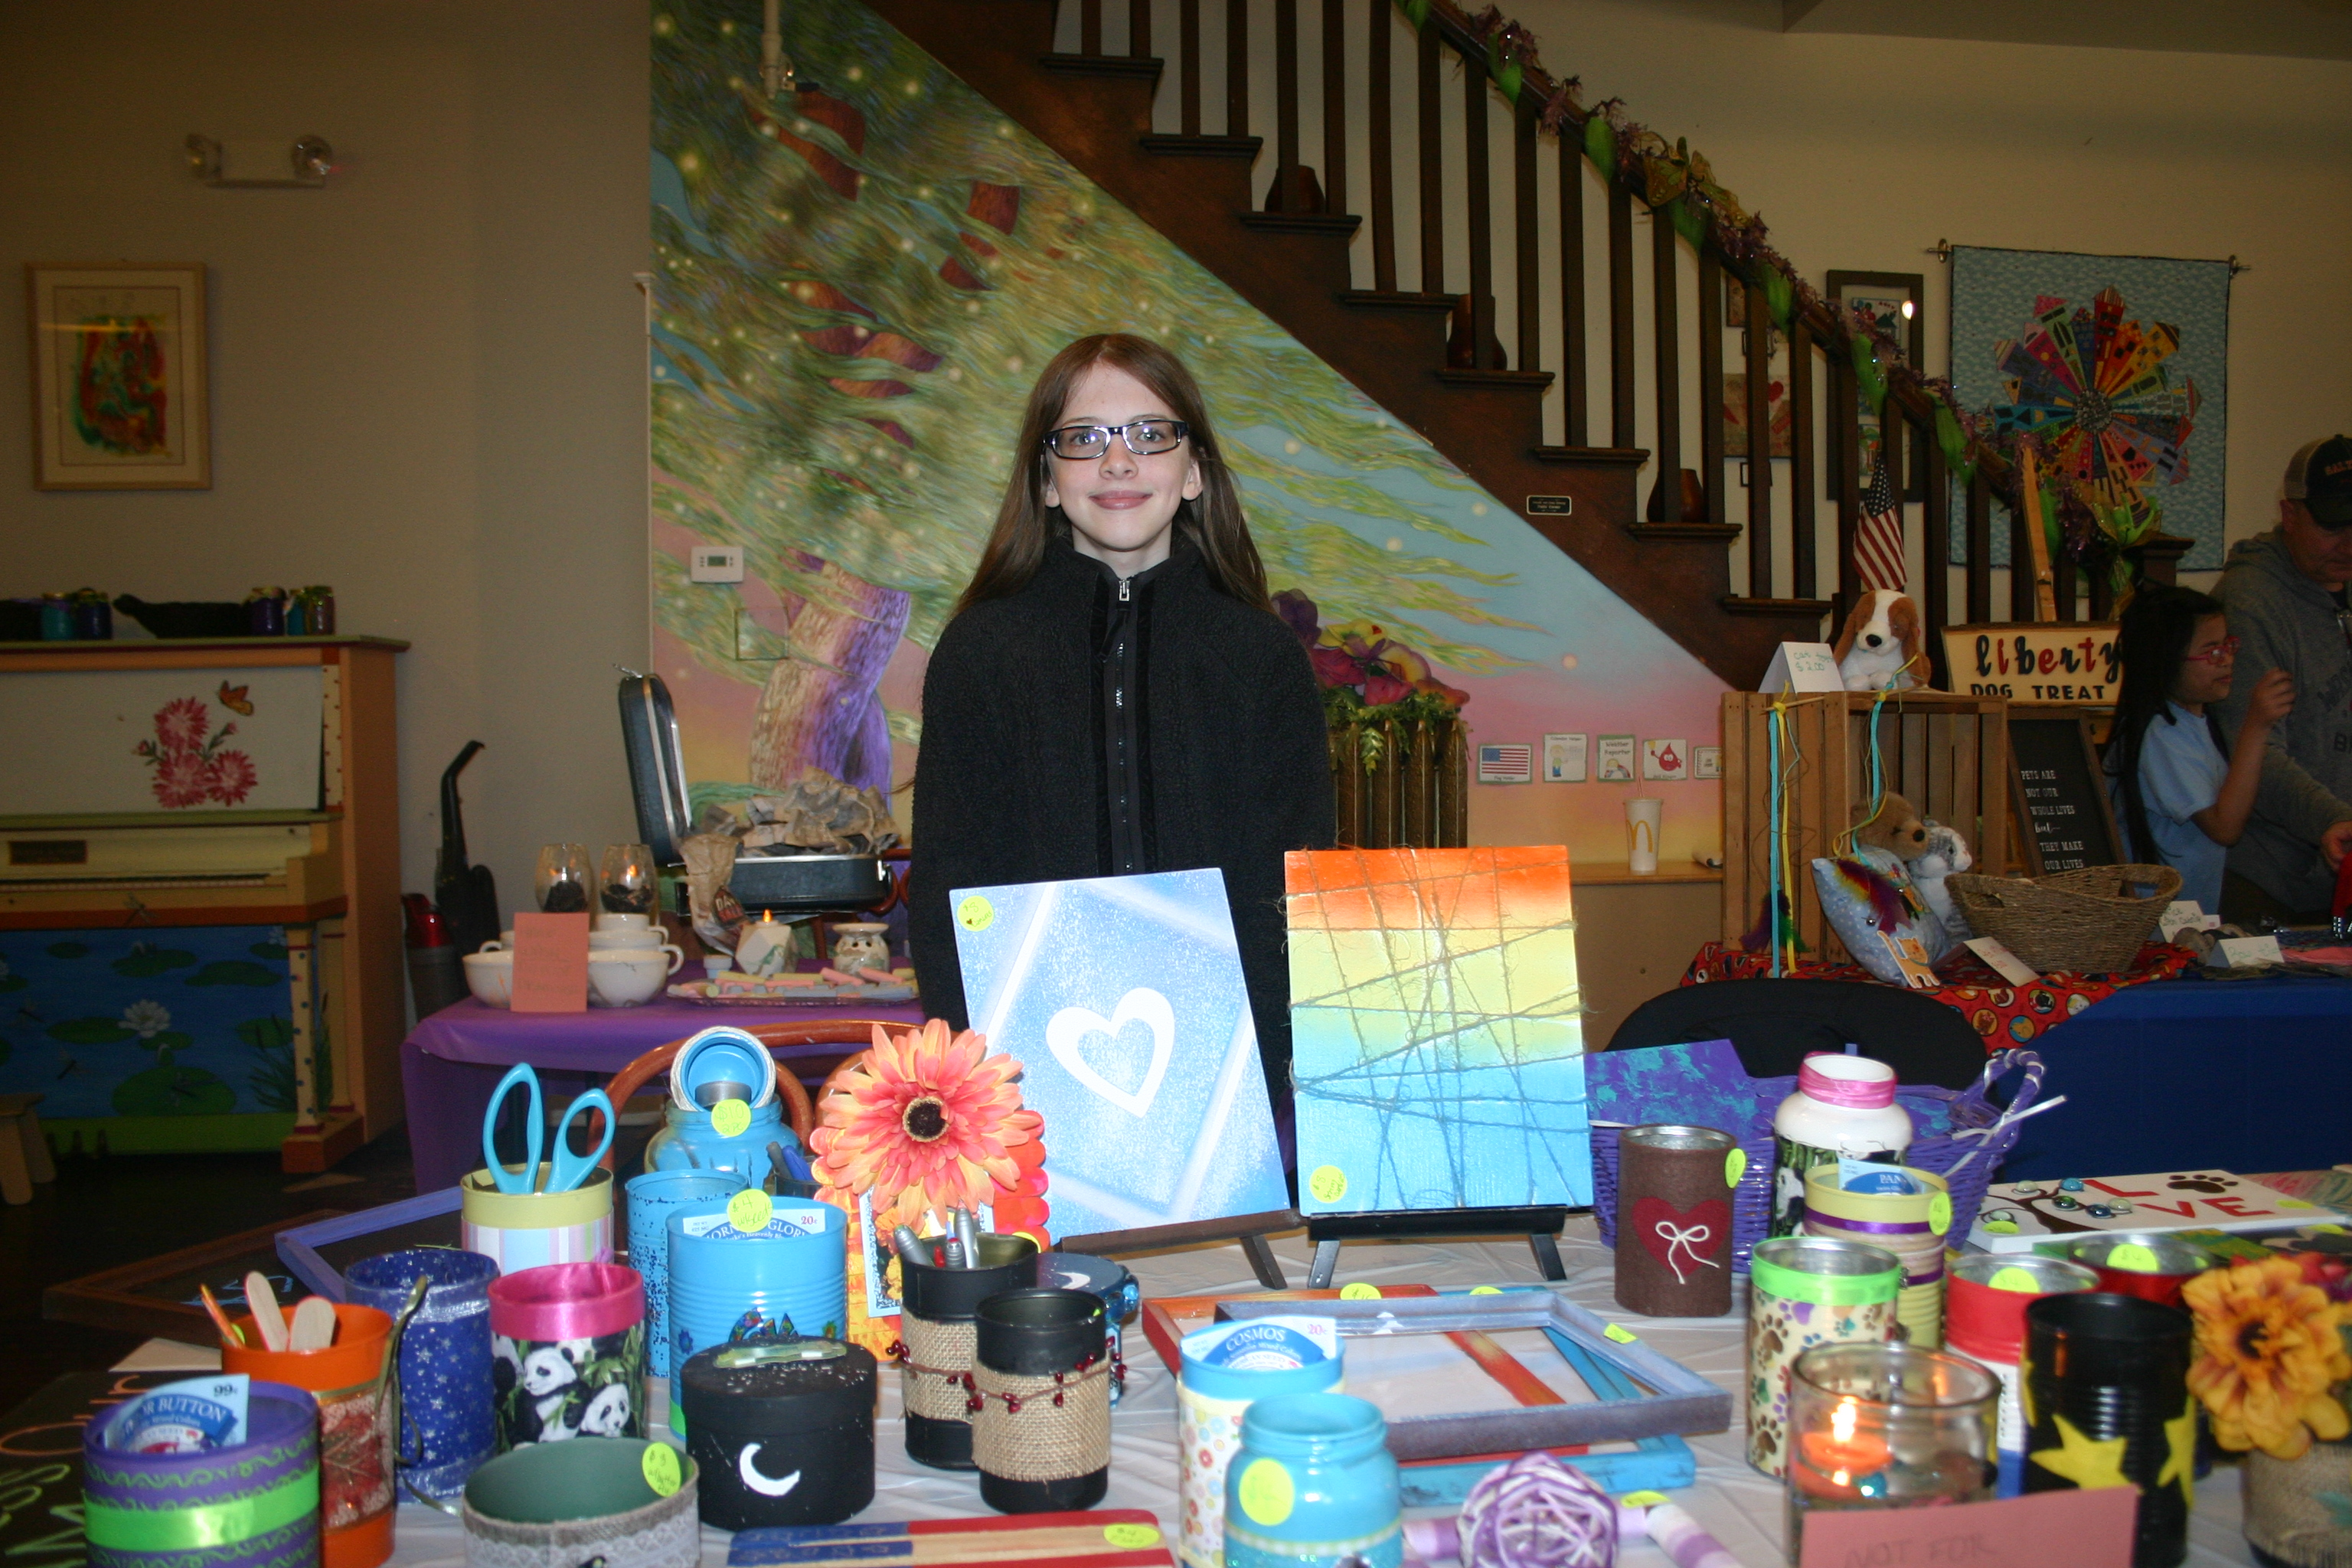 Children sell handmade arts and crafts at Wintergreen - The